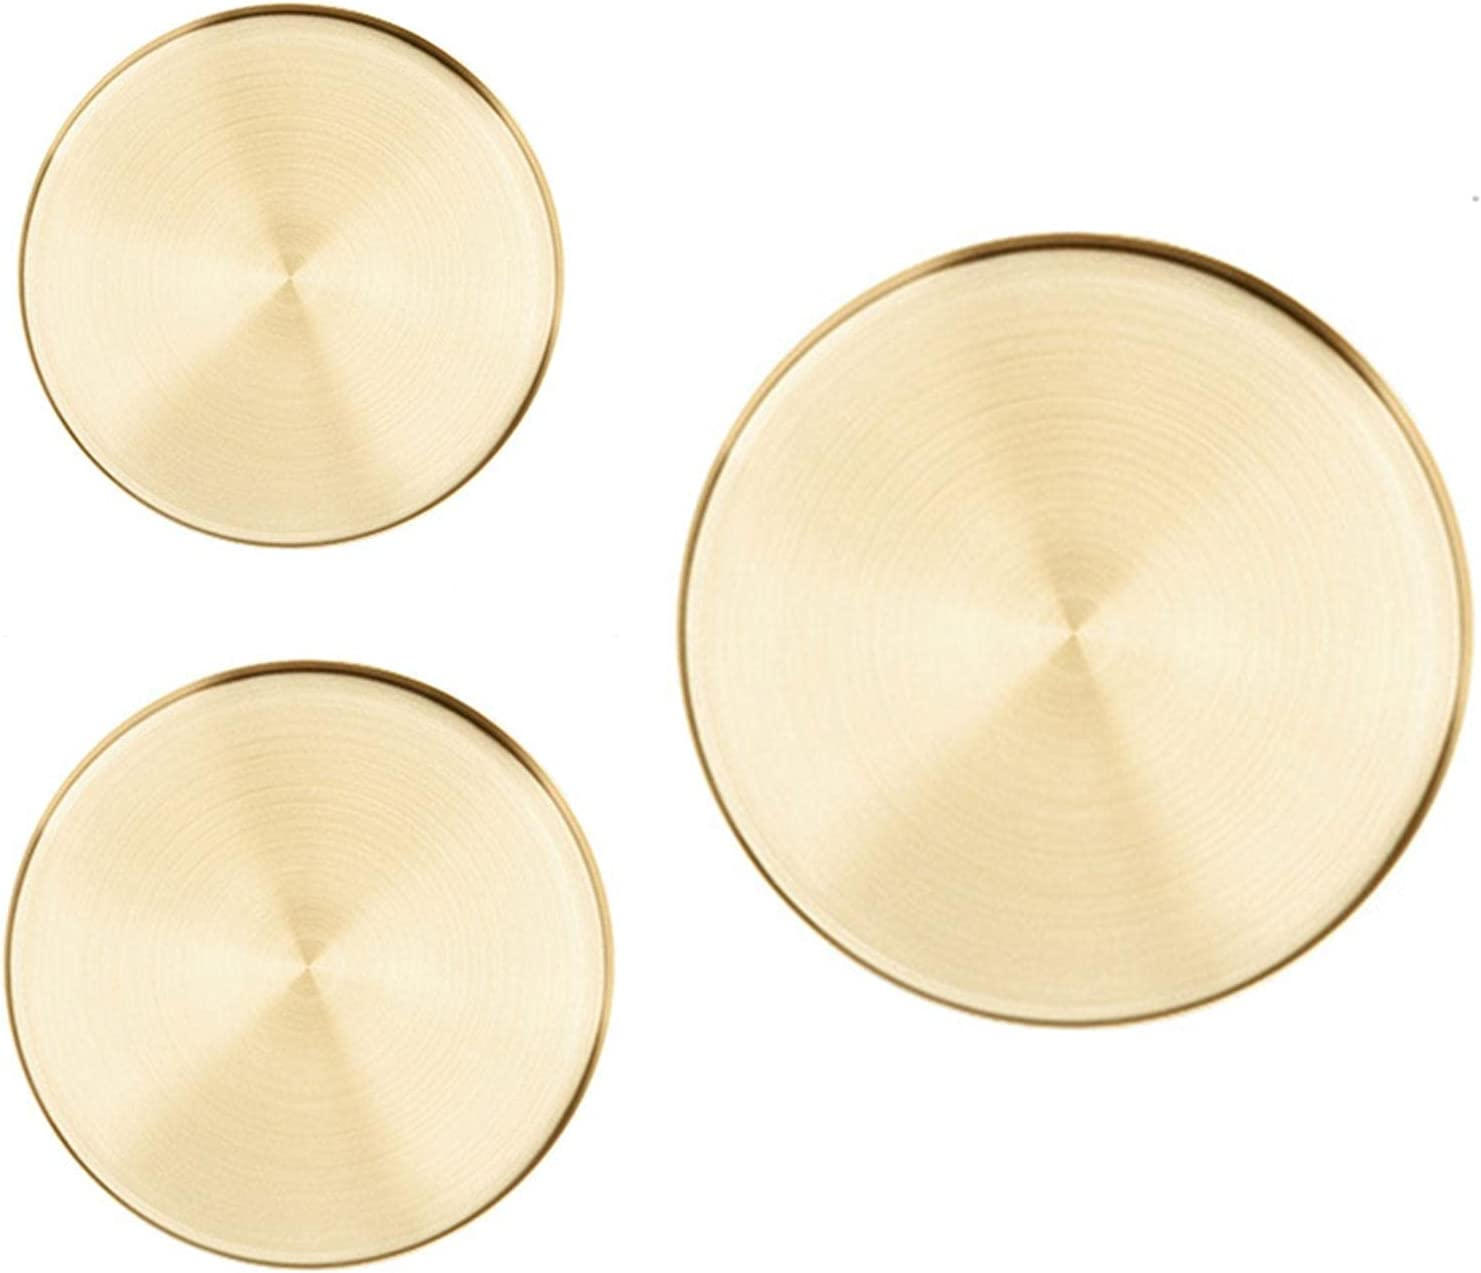 New Shipping Free Gold Round Storage Trays Stainless Low price Steel Tray Desktop